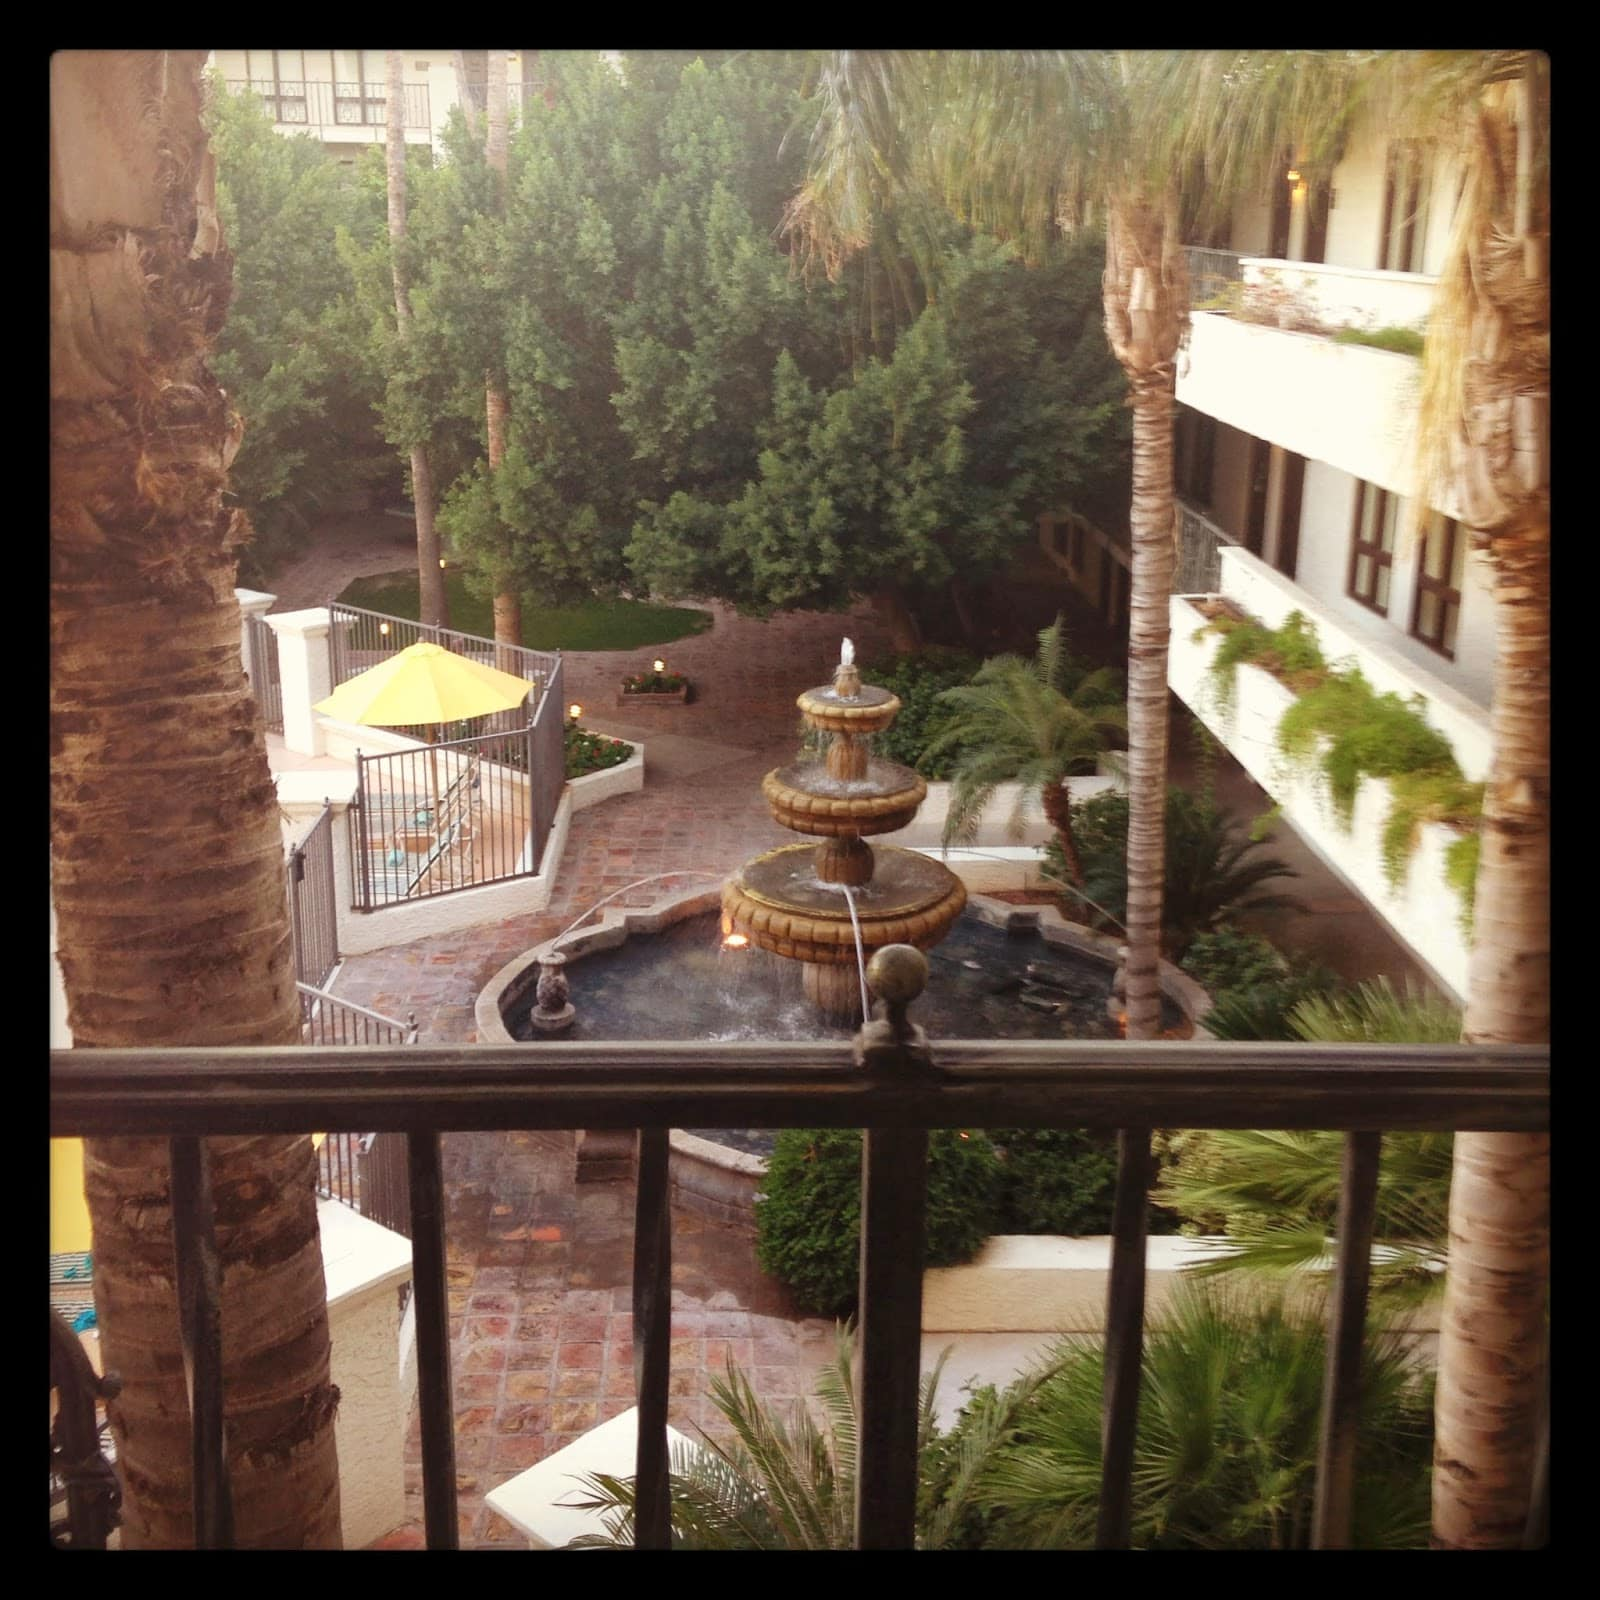 The courtyard of the hotel with a fountain in the middle.